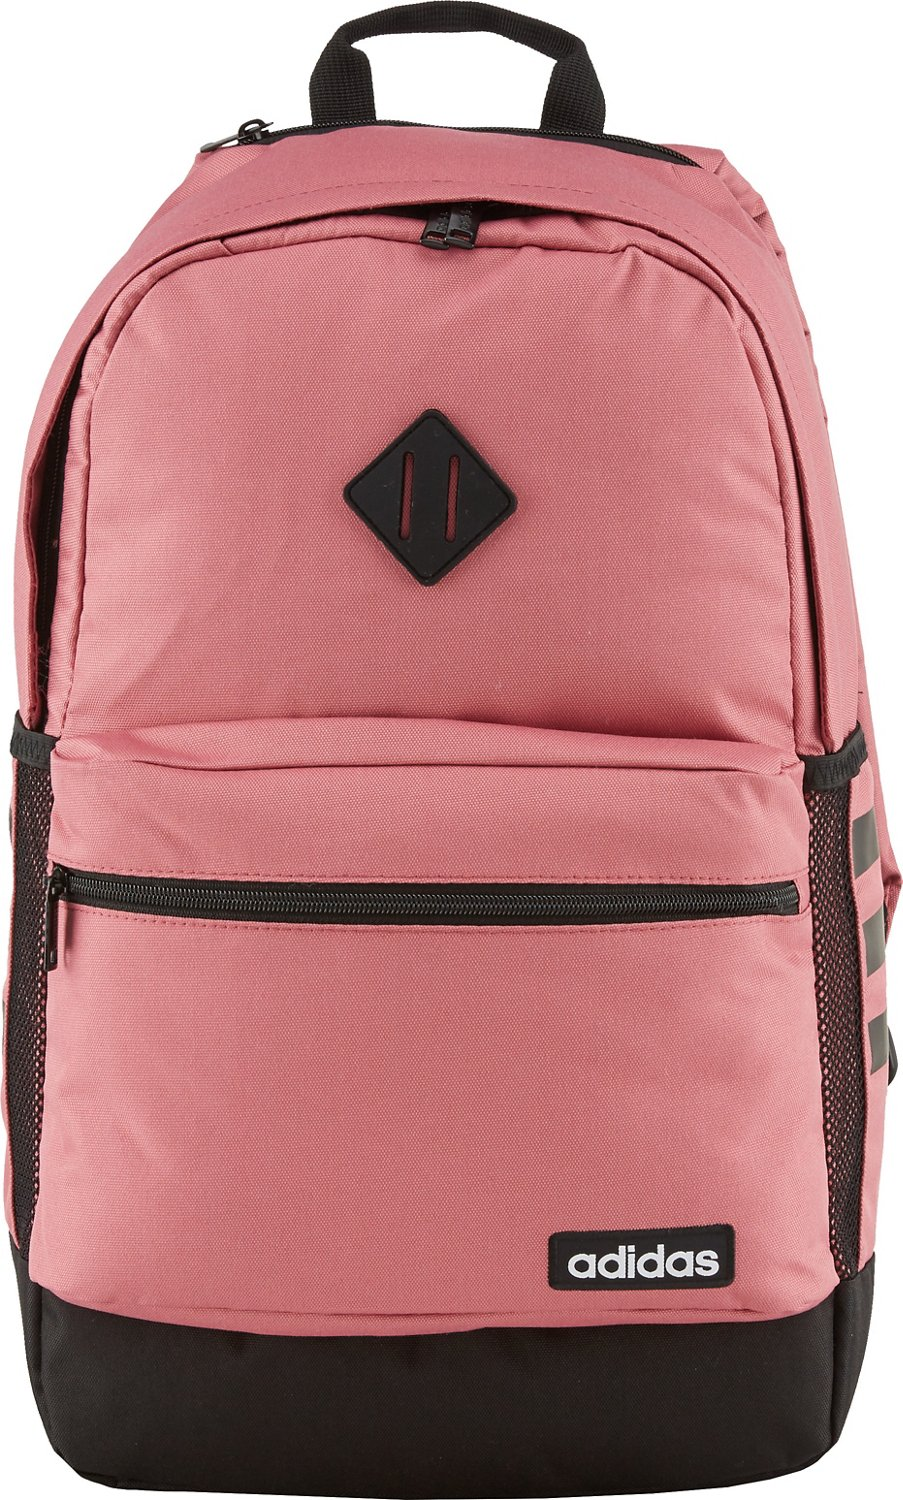 95988727f6 adidas Classic 3-Stripes Backpack